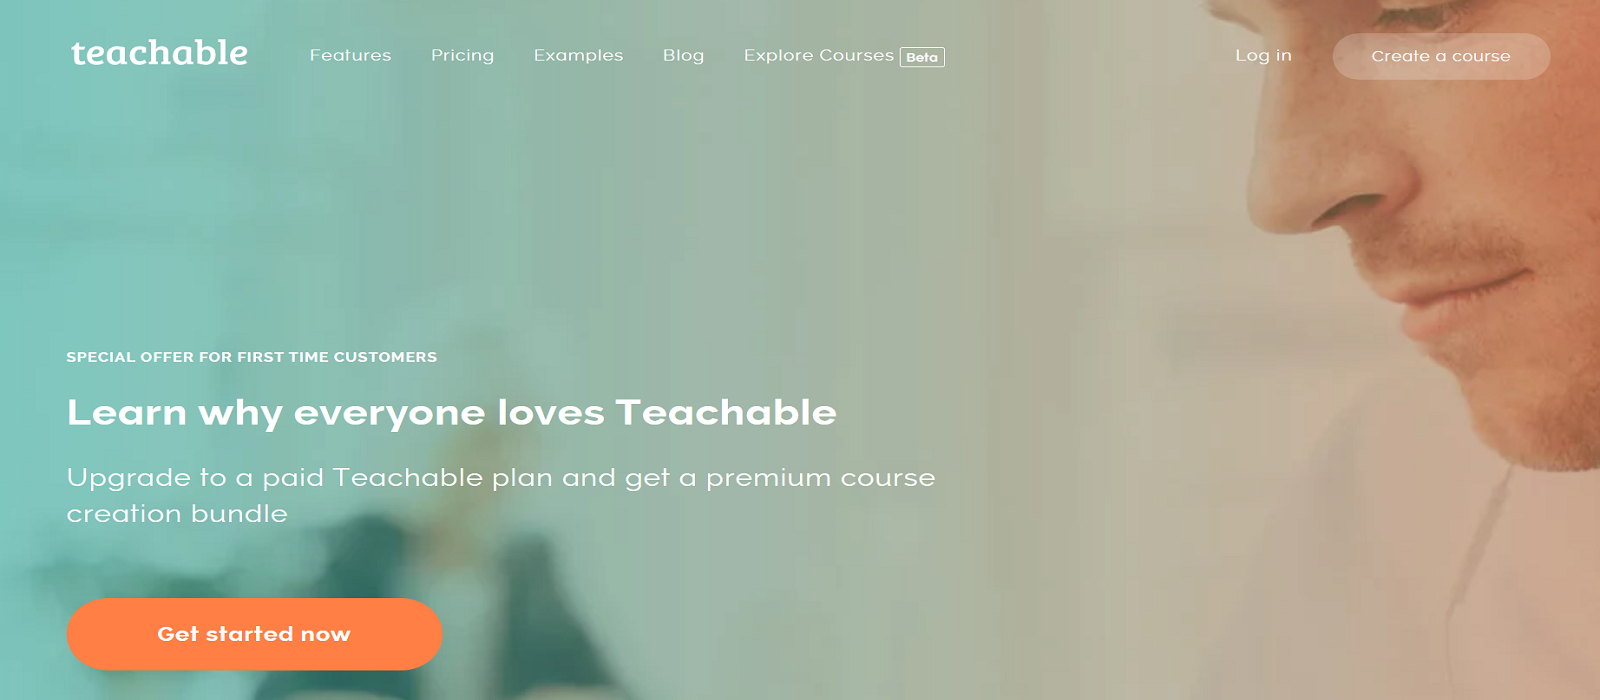 teachable best online course platforms